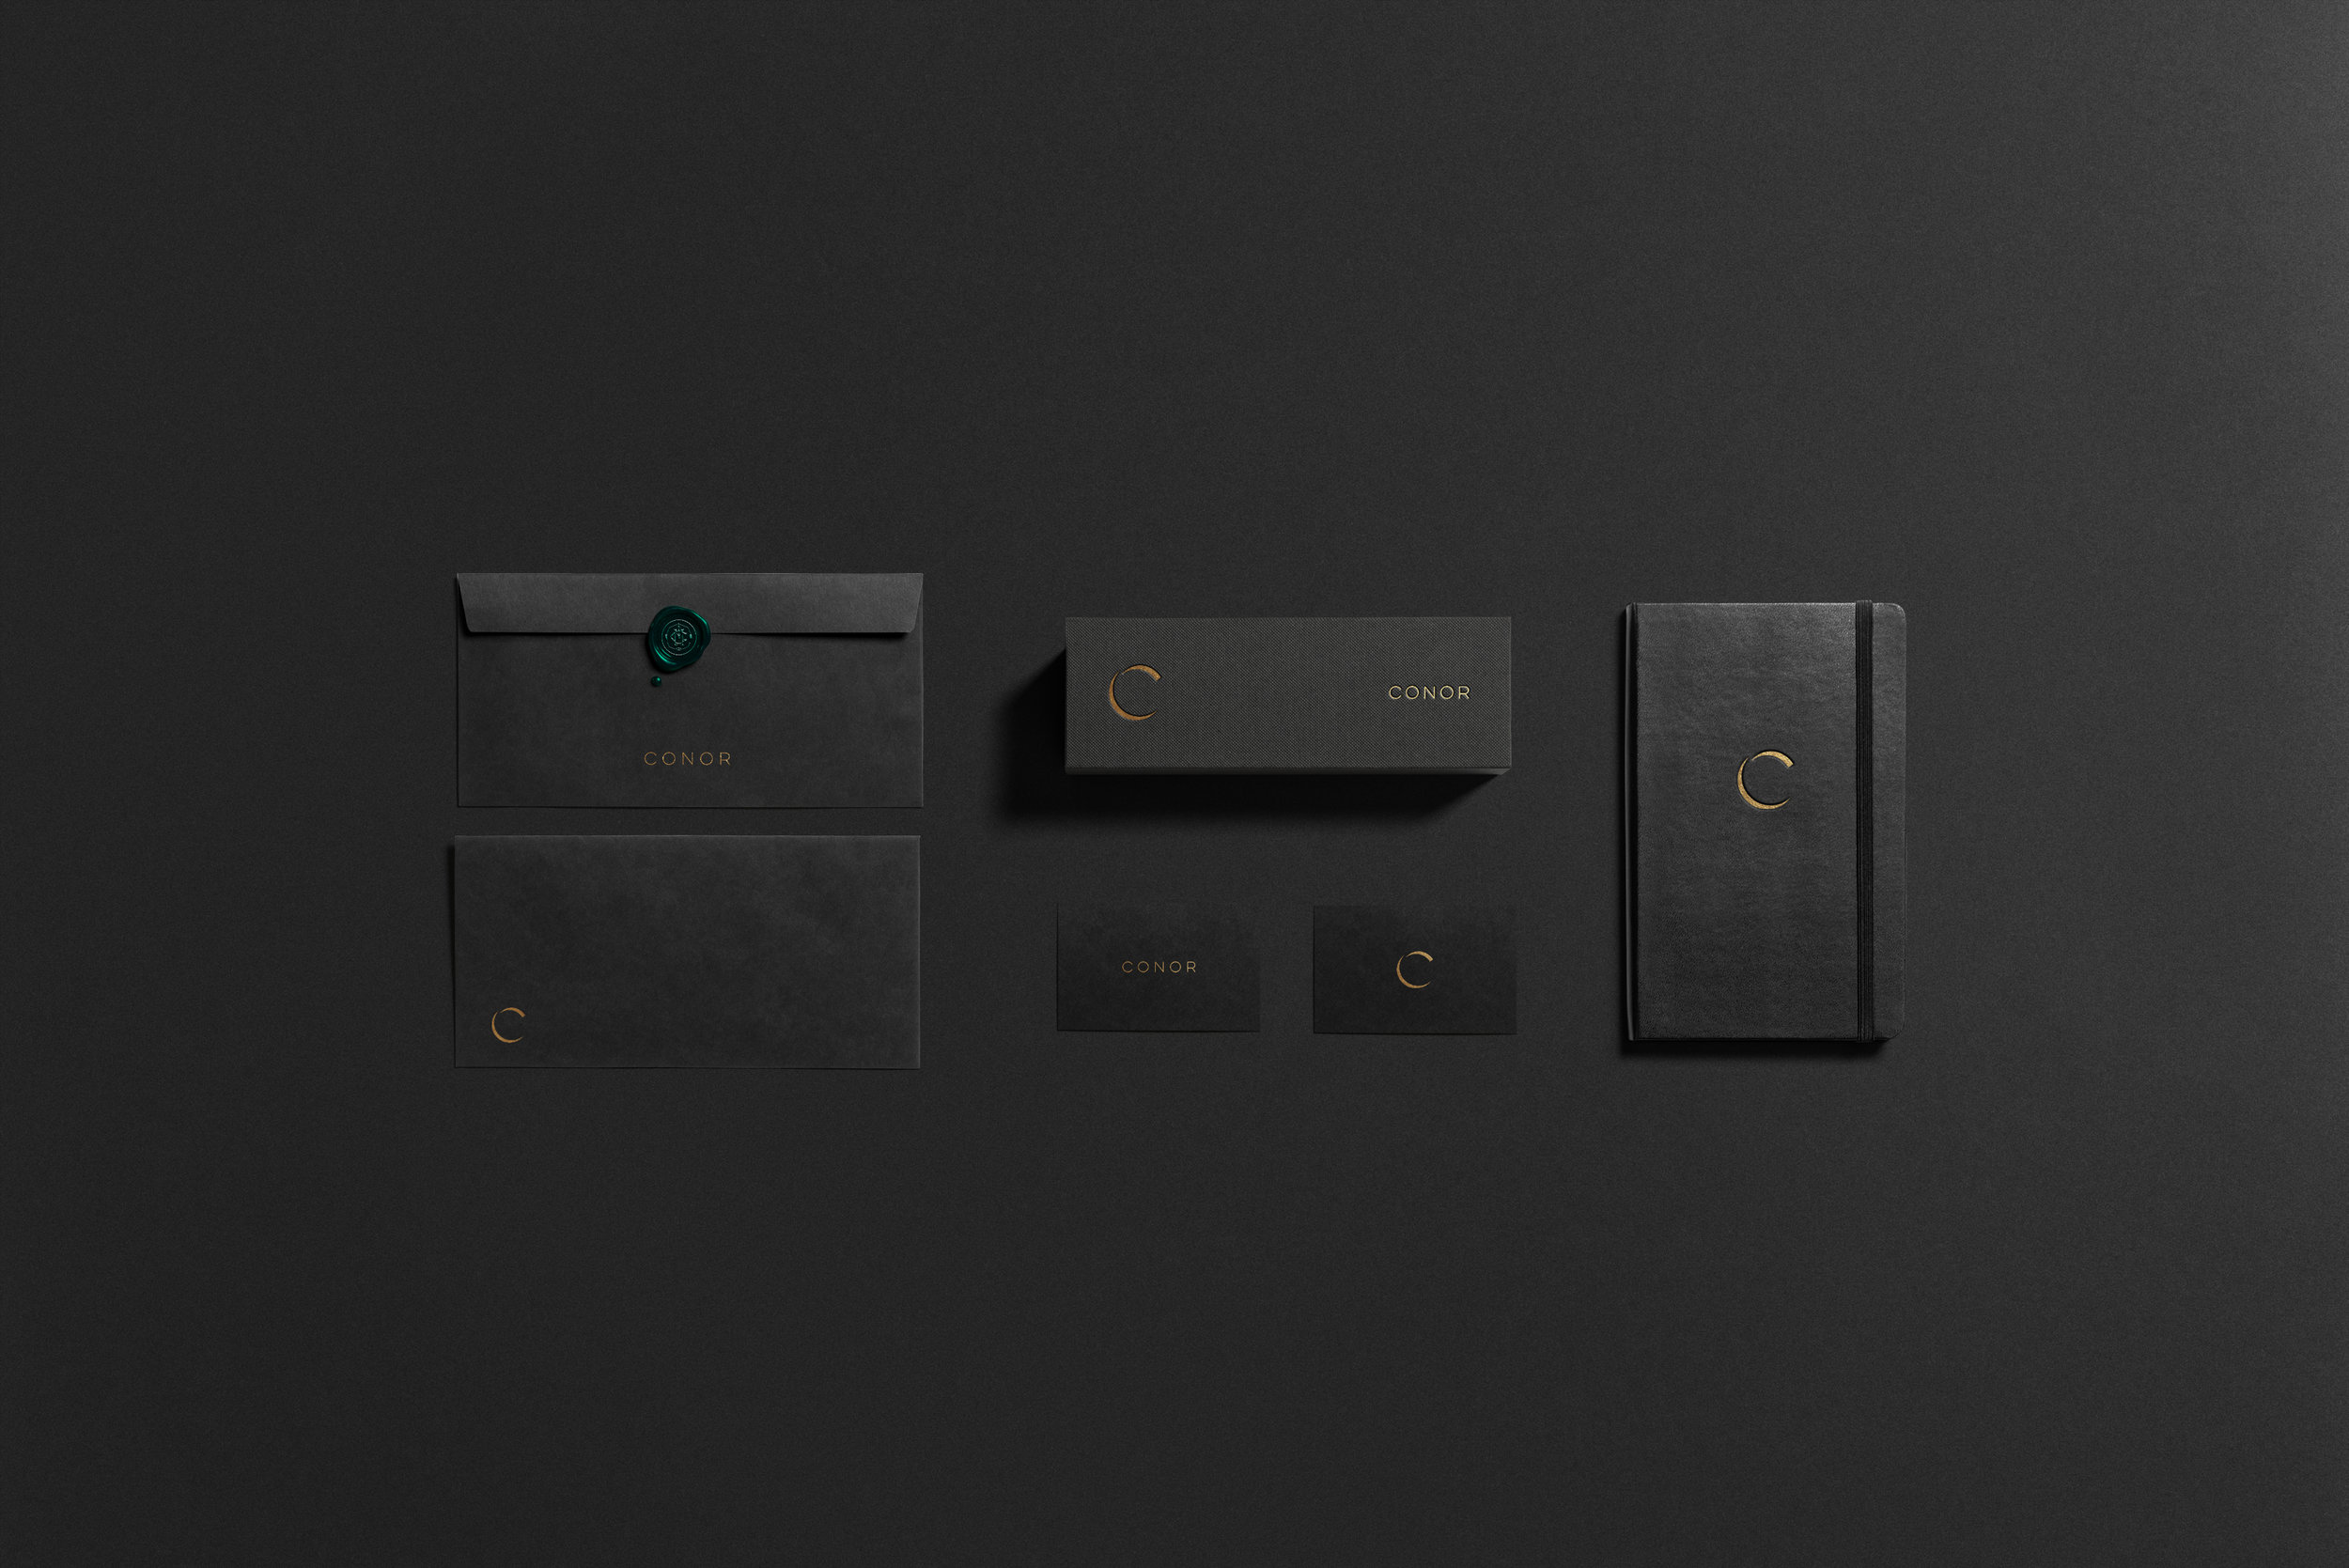 Conor-stationery-premium-mockup-inter-size.jpg